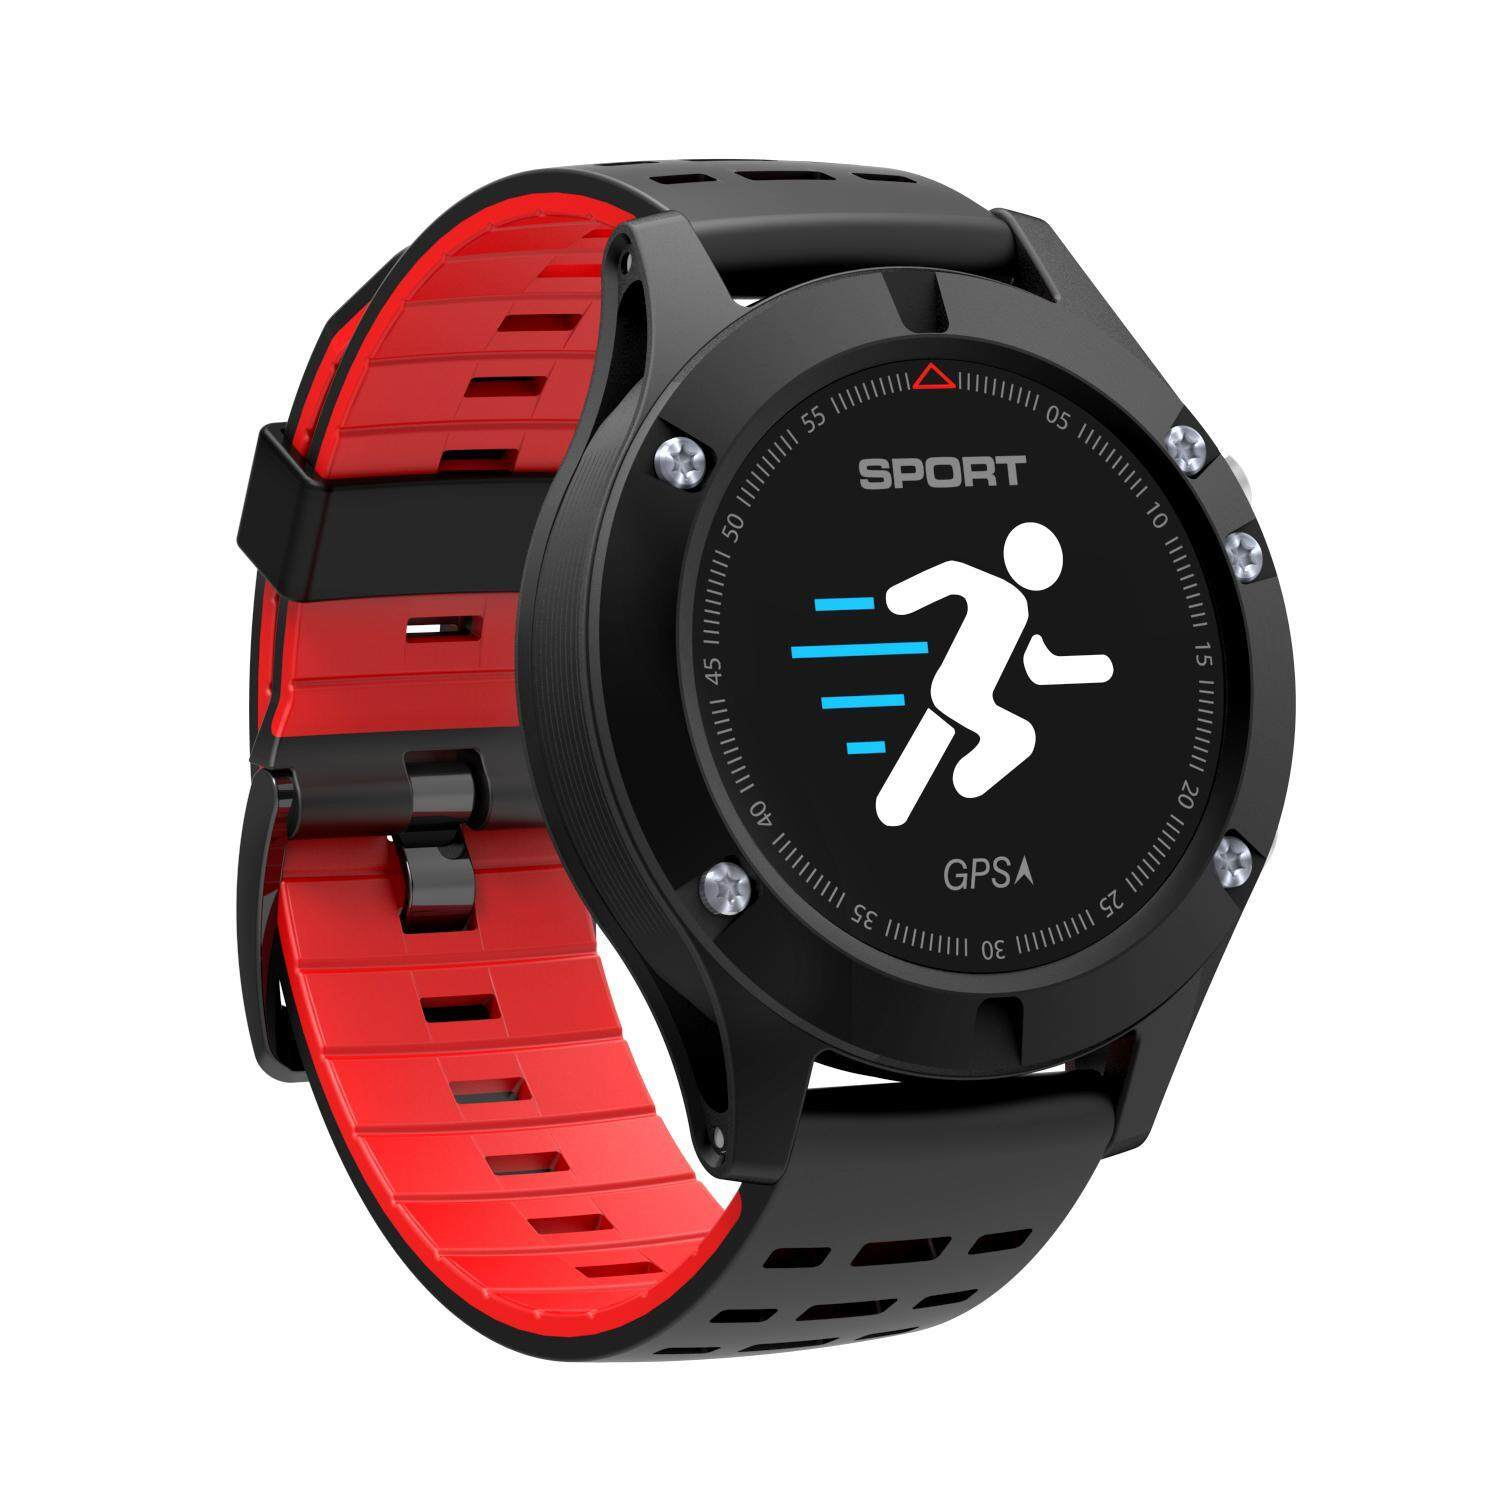 tongzhi 勿动GPS Positioning Multi-sport Mode Bluetooth Smart Watch Heart Rate Monitor Step Height Measurement of Ambient Temperature - intl